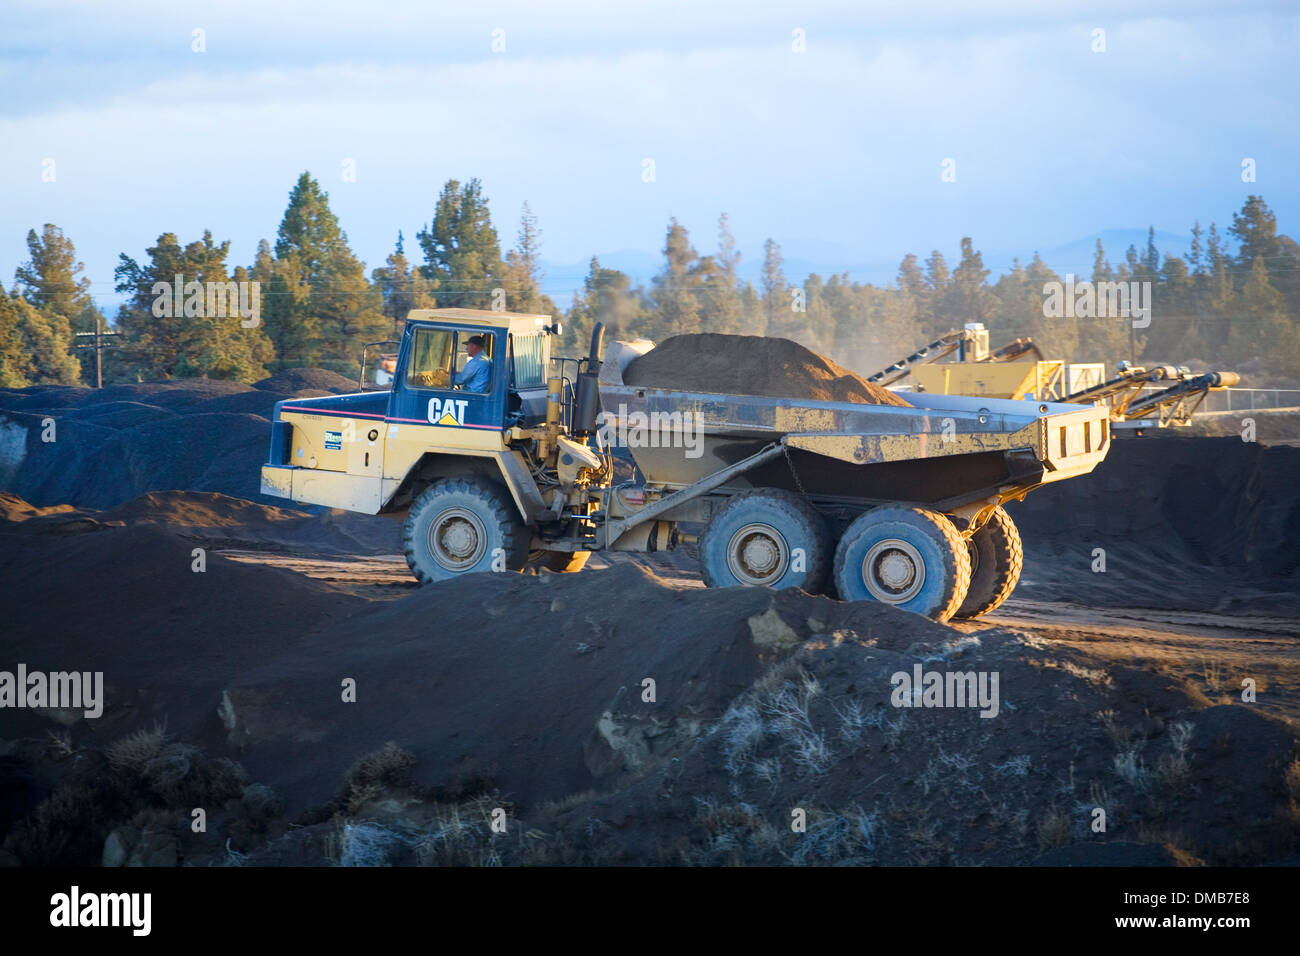 A giant Caterpillar dump truck moving earth - Stock Image